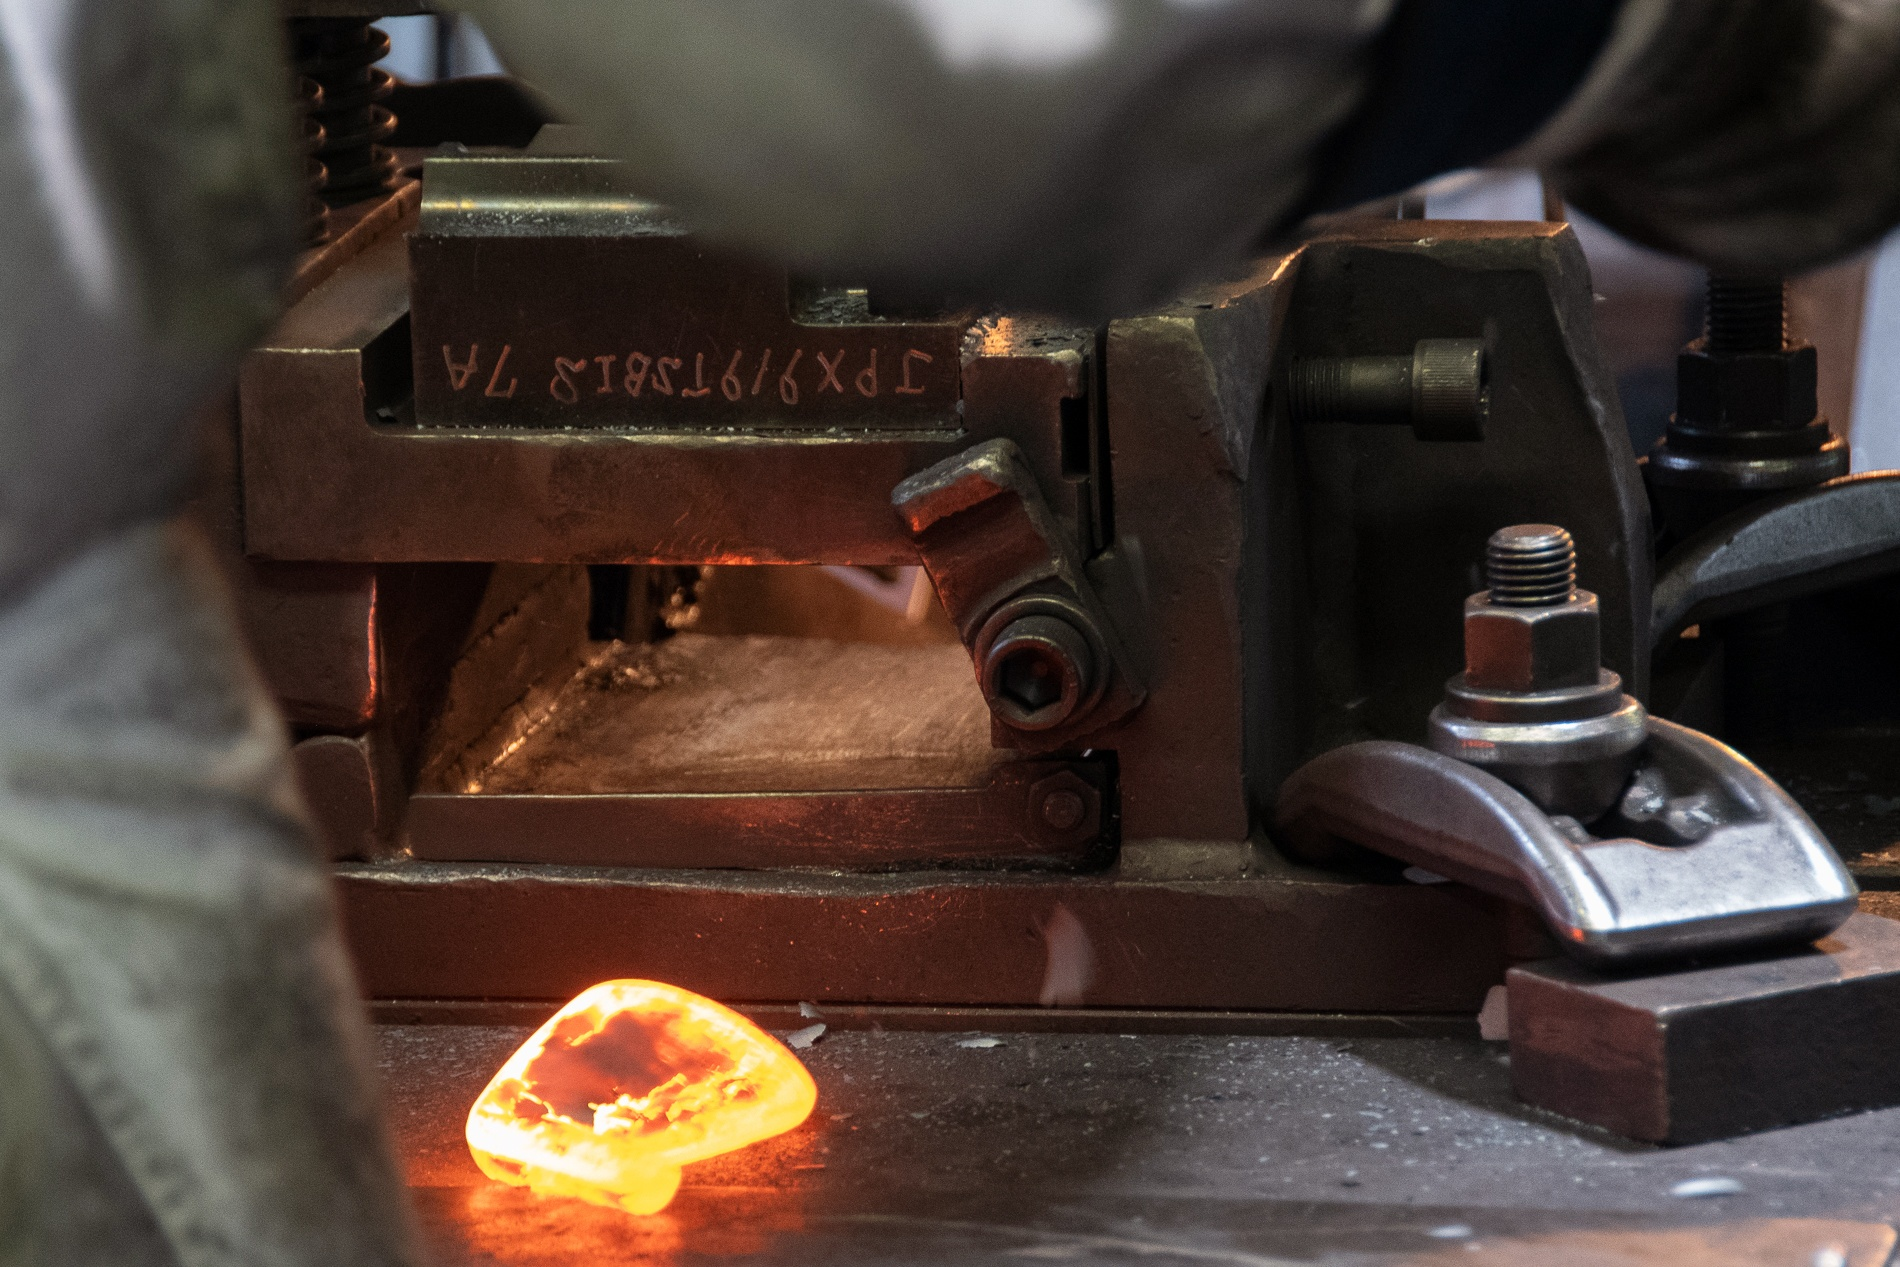 6e155c4c7c7 Beyond the steady stream of beloved Mizuno irons, the Chuo/Mizuno  partnership led to the development of the Grain Flow Forging and Grain Flow  Forging HD ...